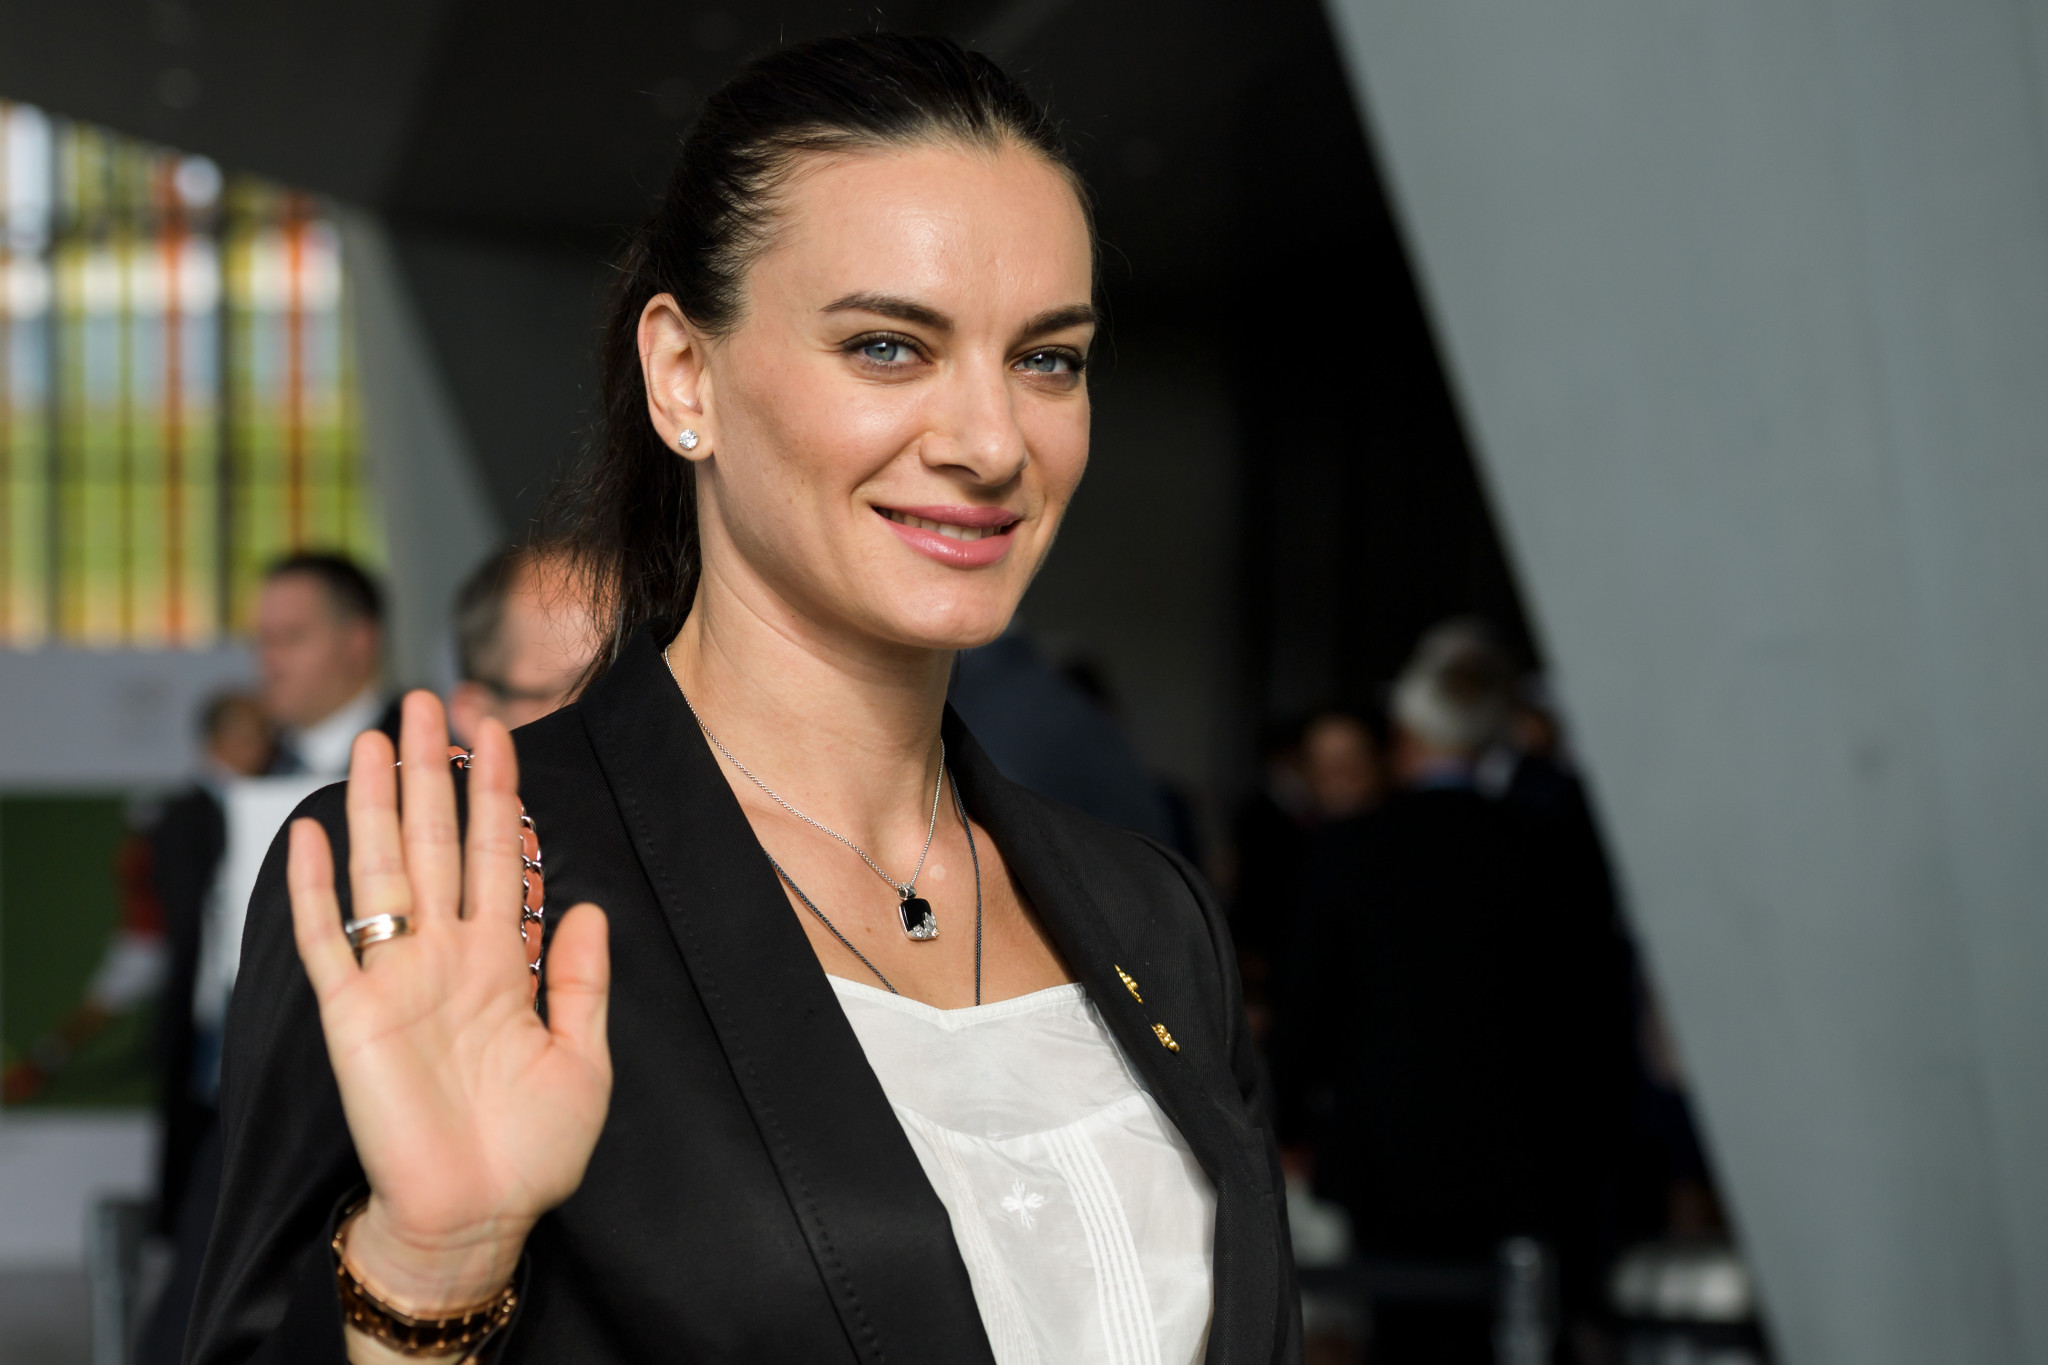 Isinbayeva hopes Russian Athletics Federation suspension can be lifted before World Championships